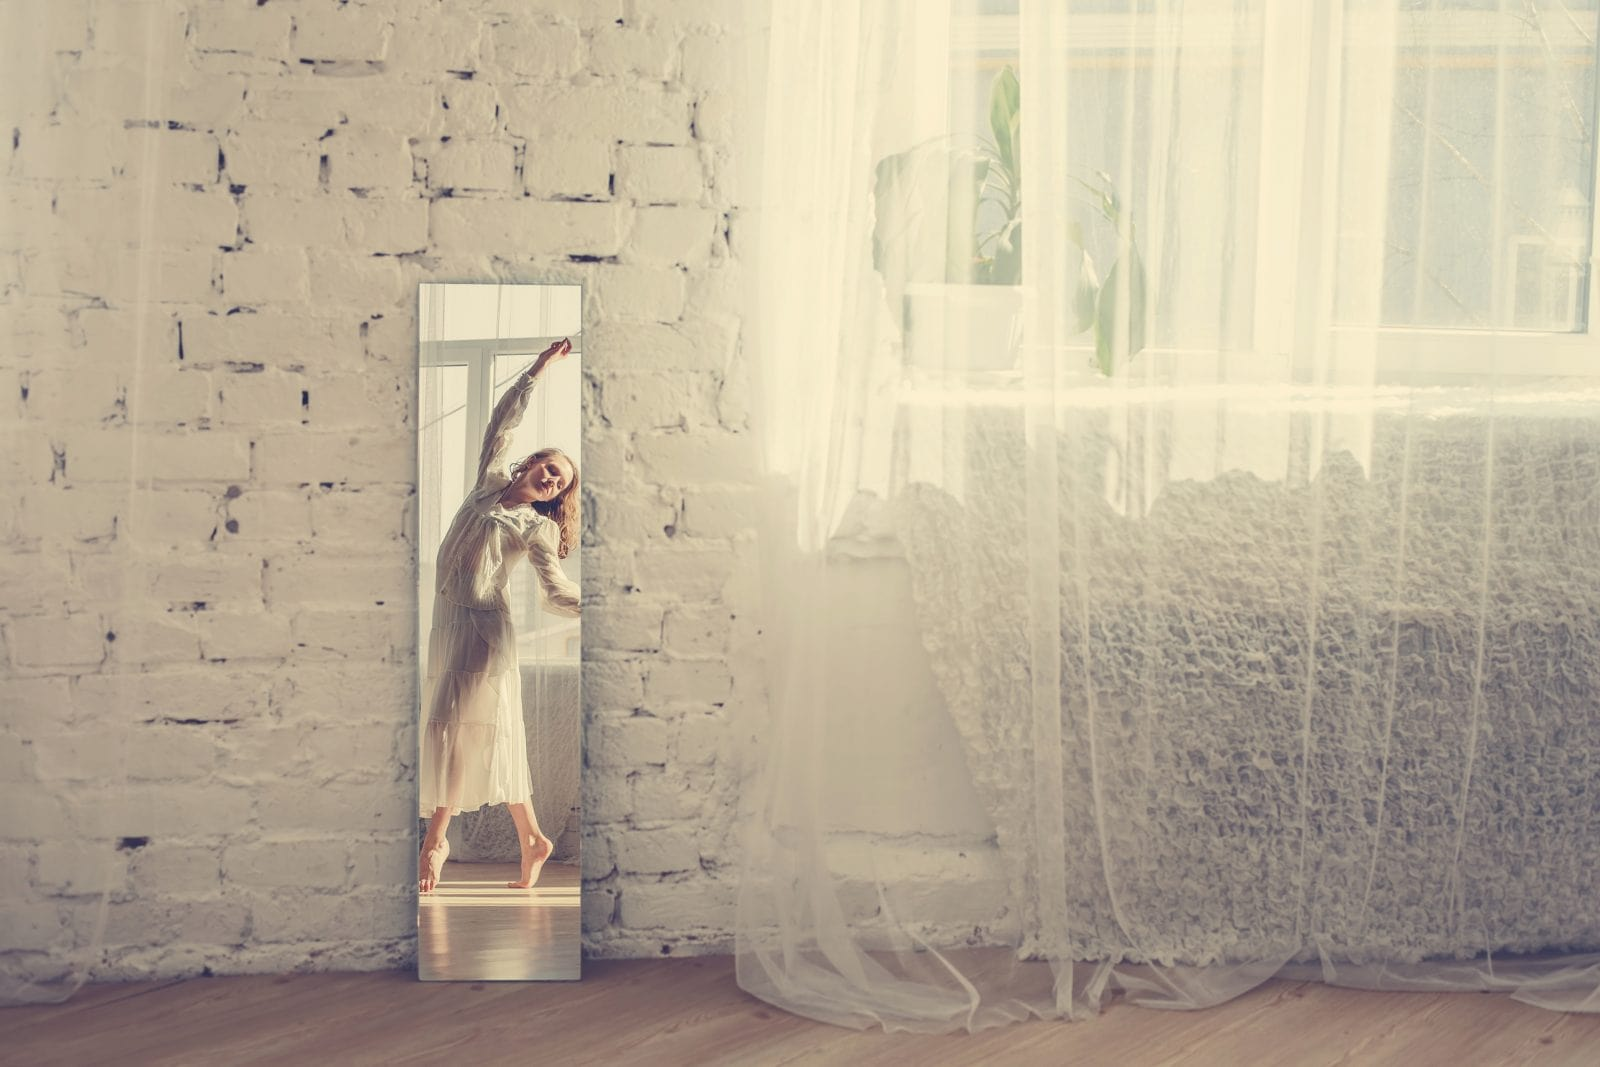 Beautiful  woman in white dress dancing in the bright interior. Reflection in the mirror